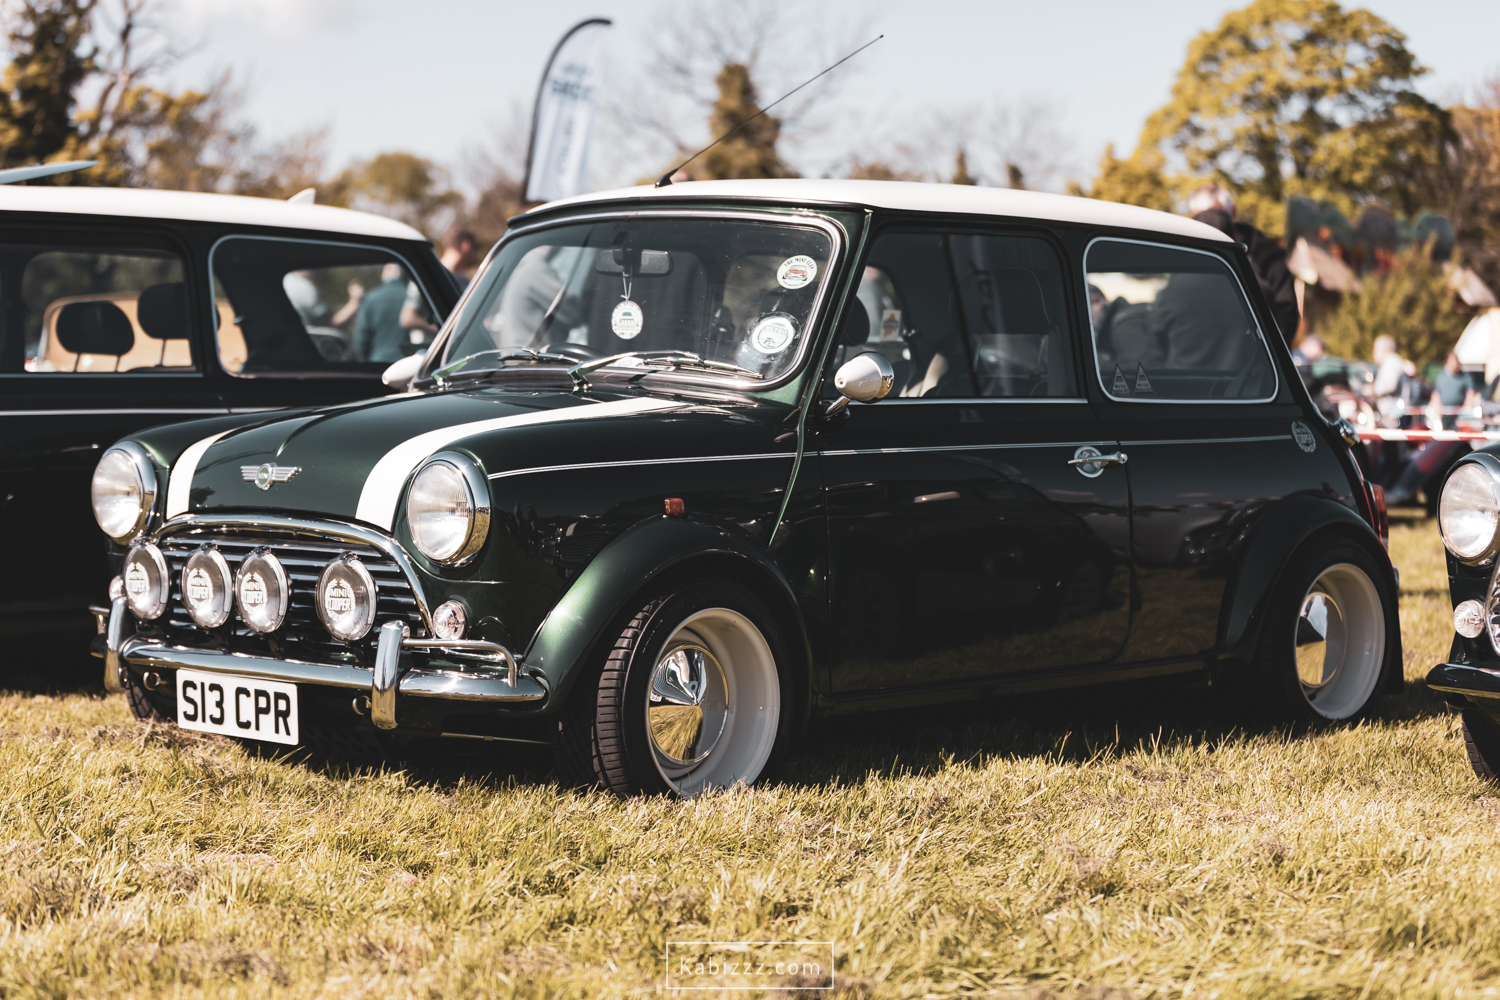 Kabizzz_Photography_Stirling_District_Classic _cars-8.jpg